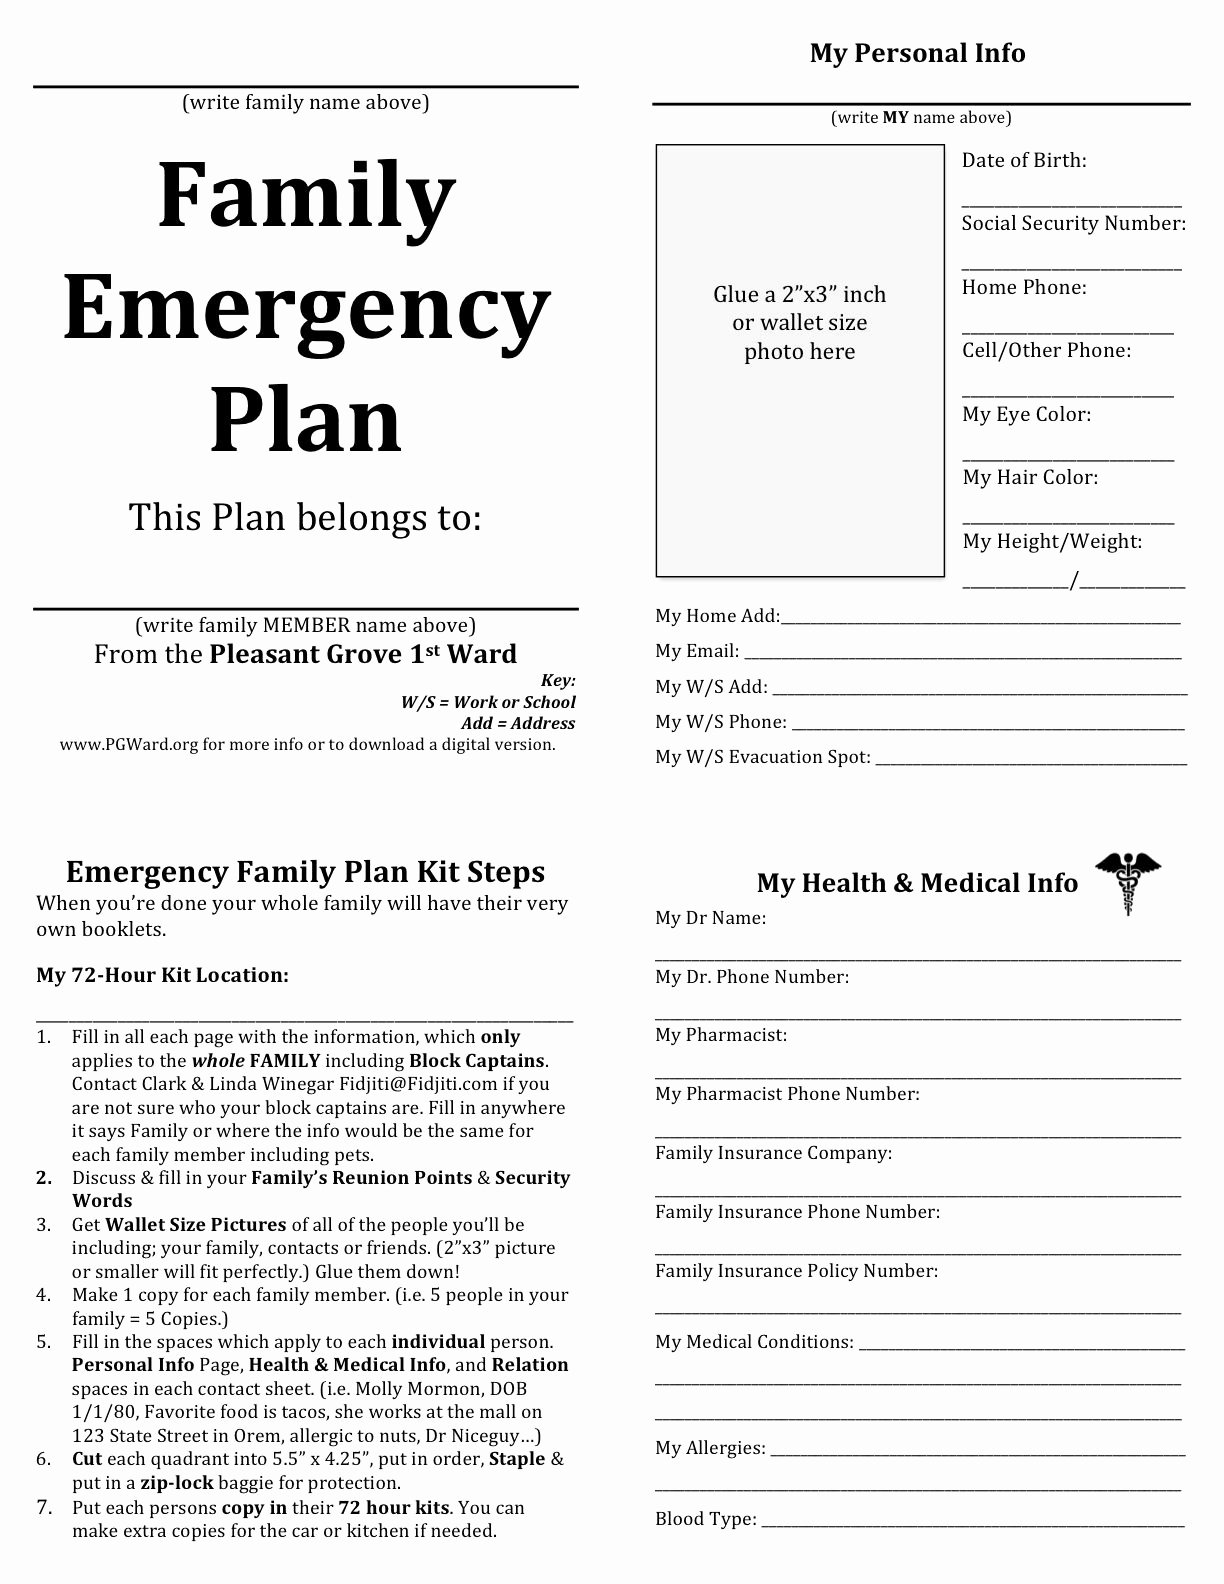 Flood Emergency Response Plan Template Inspirational Family Emergency Plan Printable Documents for Your